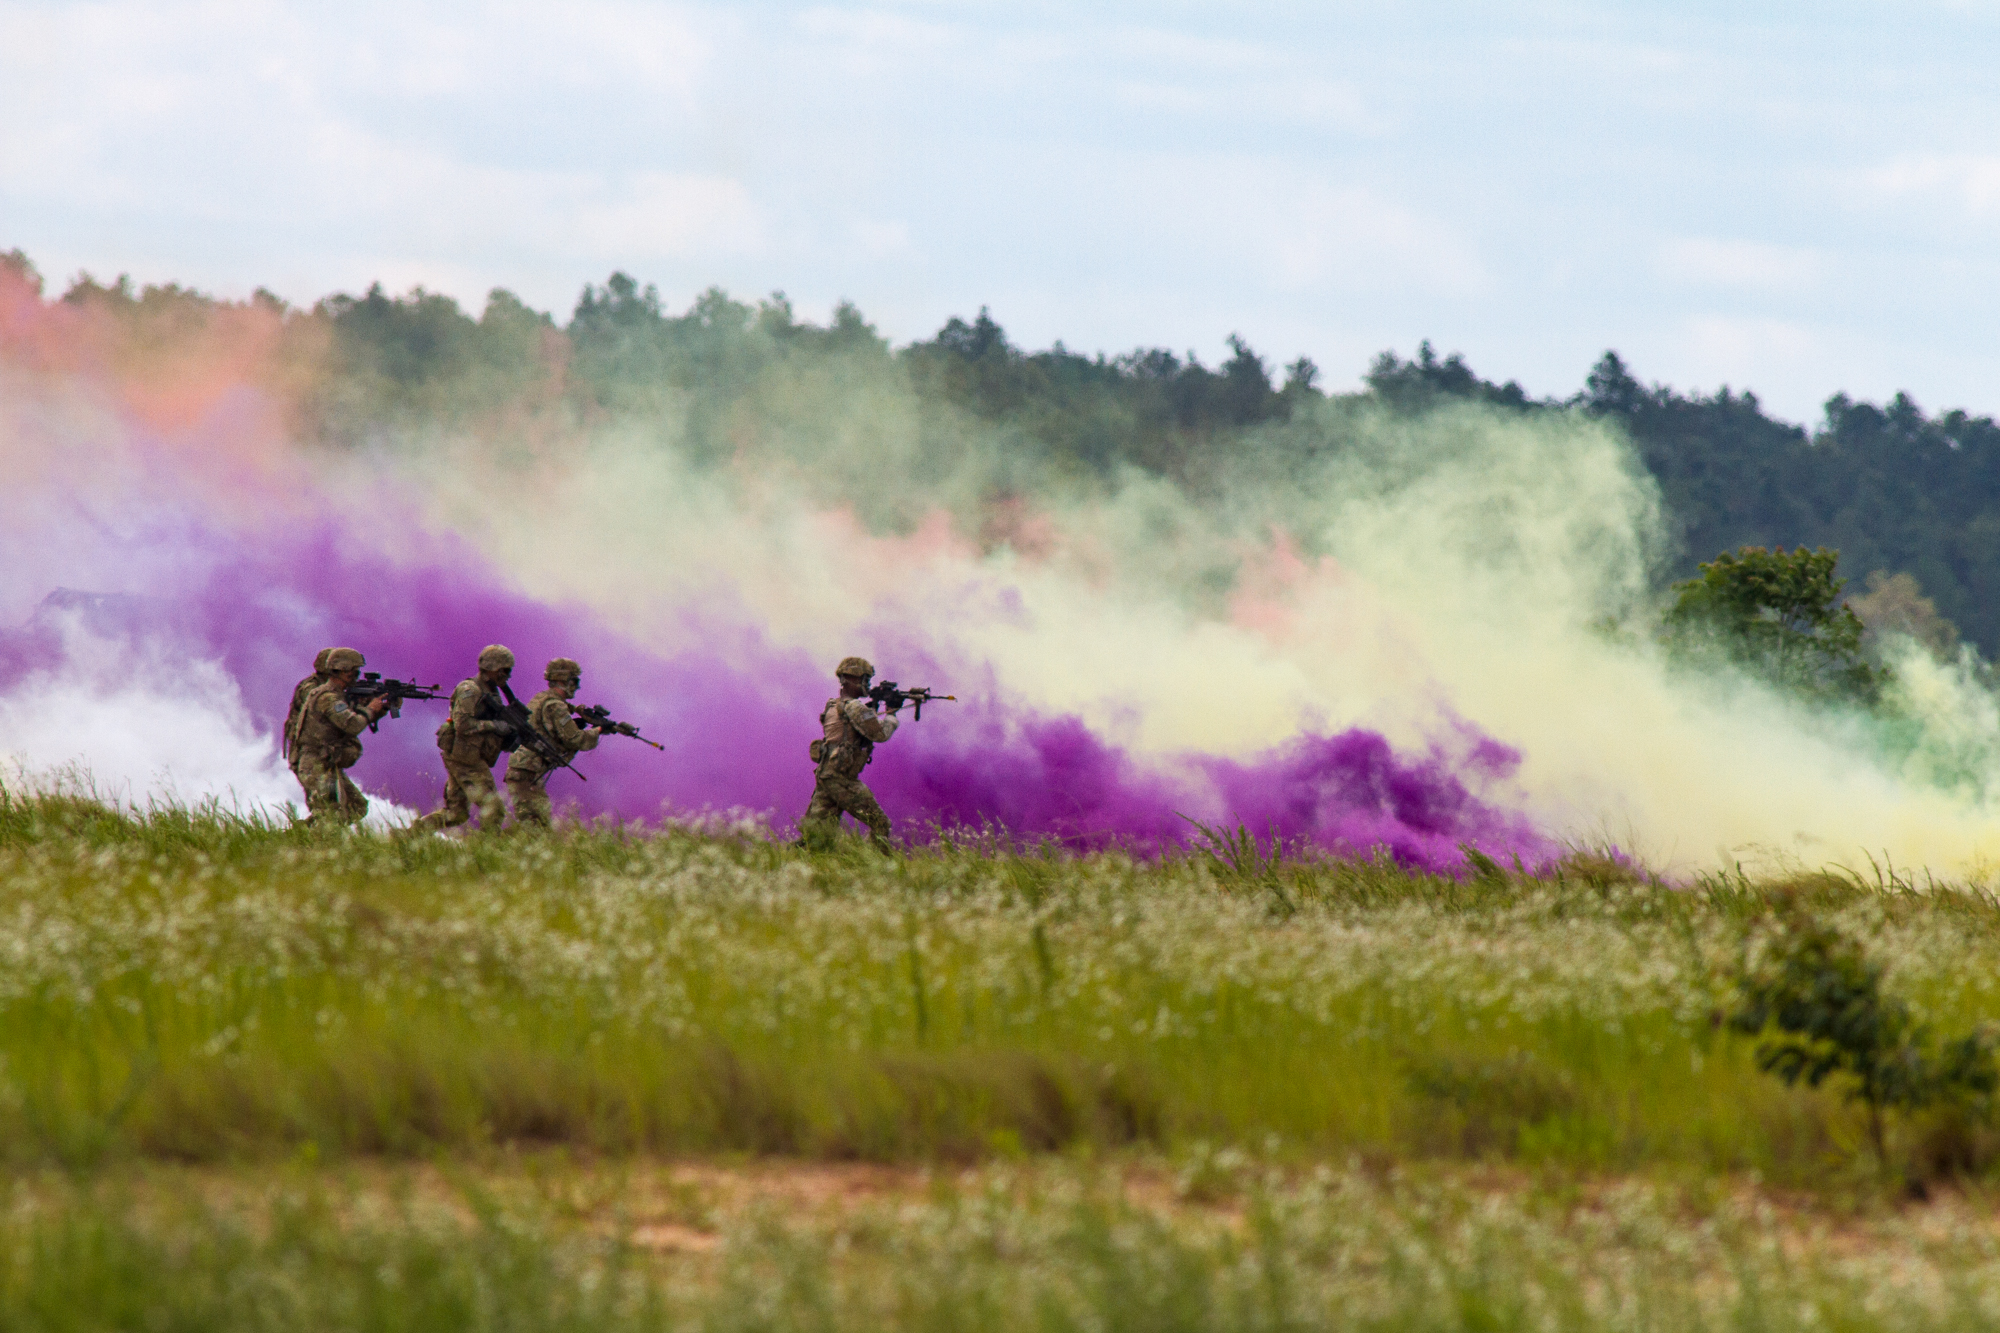 Paratroopers from the 82nd Airborne Division simulate an assault of a compound under cover of smoke as part of the Airborne Review at Sicily Drop Zone at Fort Bragg, N.C., on Thursday, May 25, 2017.